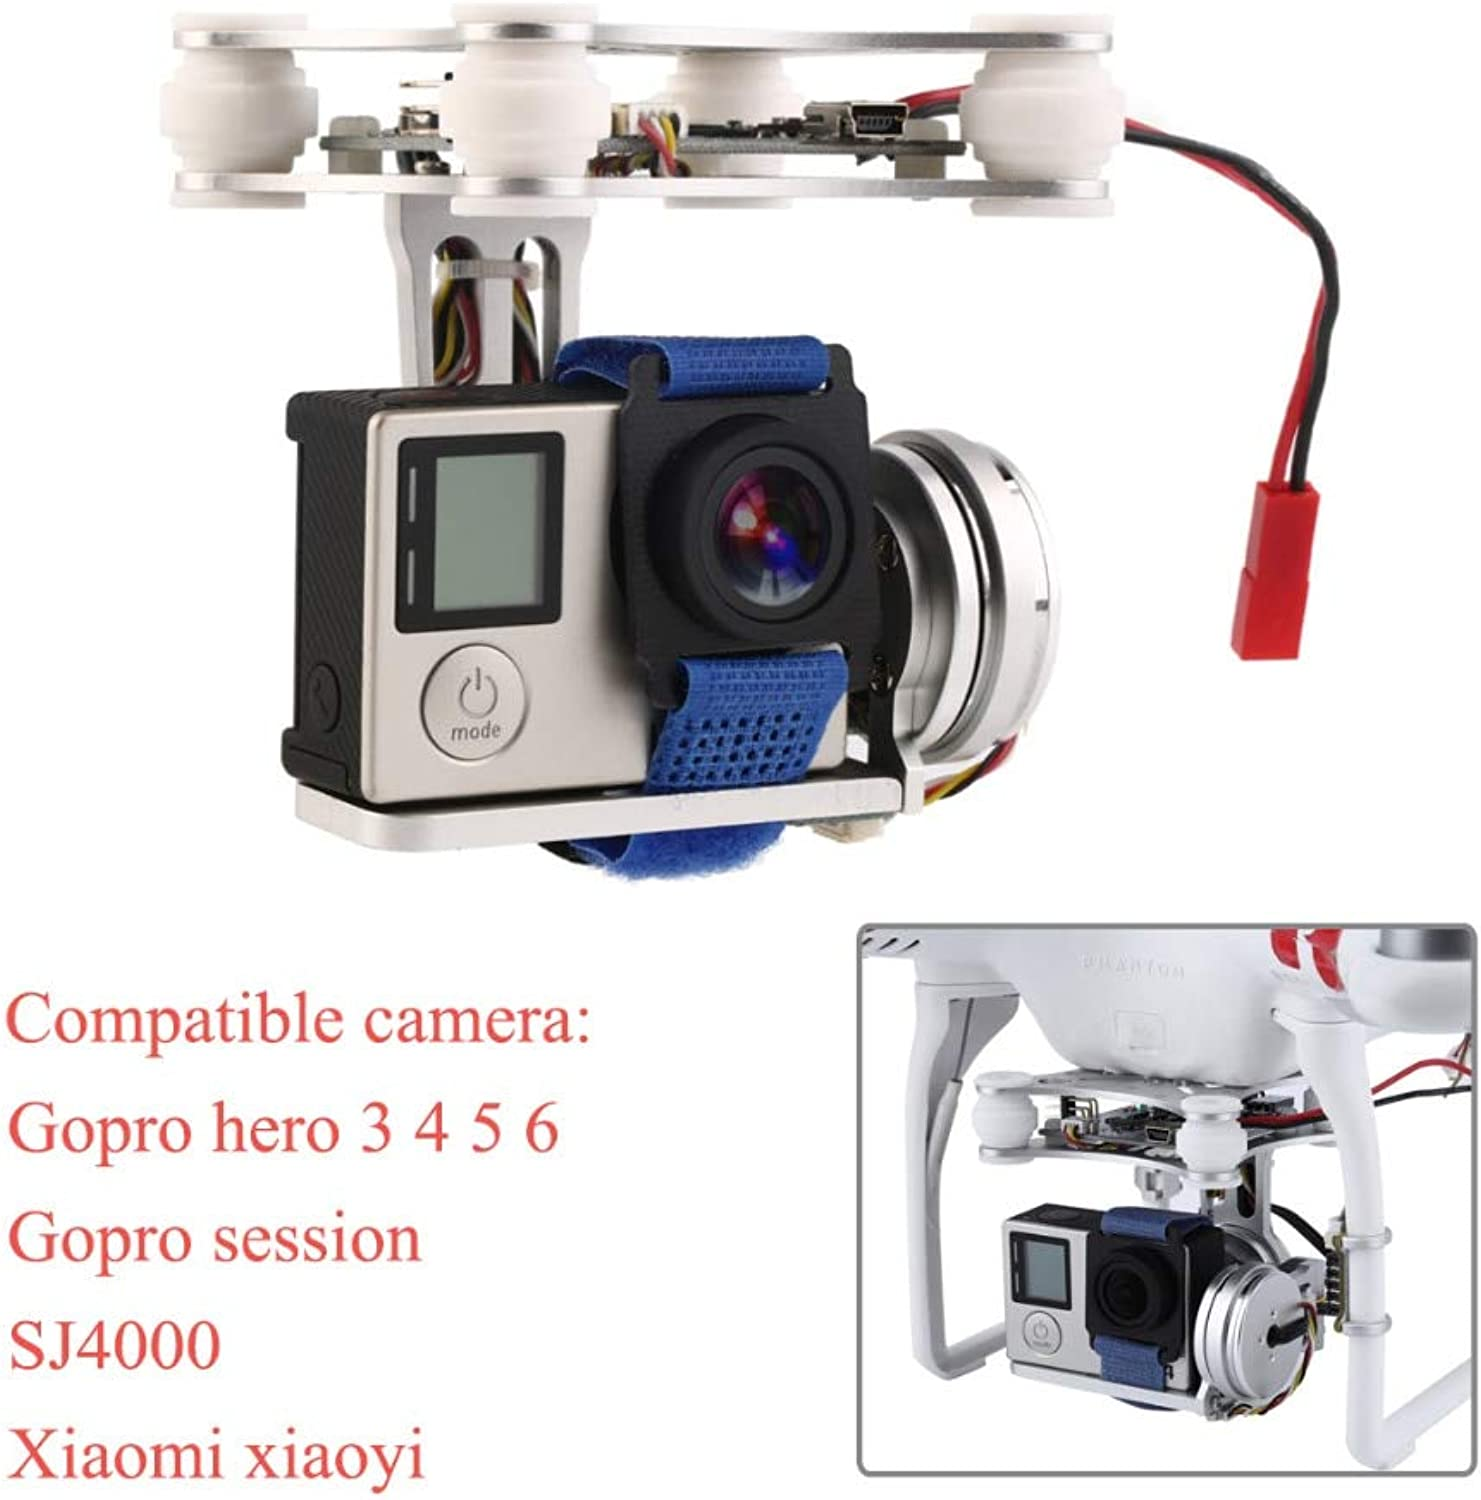 Laliva Gopro3 4 5 6 Sj4000 Lightweight 2Axis Brushless Gimbal Frame with BGC Board 2804 140kv Motor for RC FPV Drone S500 S550 F450  (color  Silver)